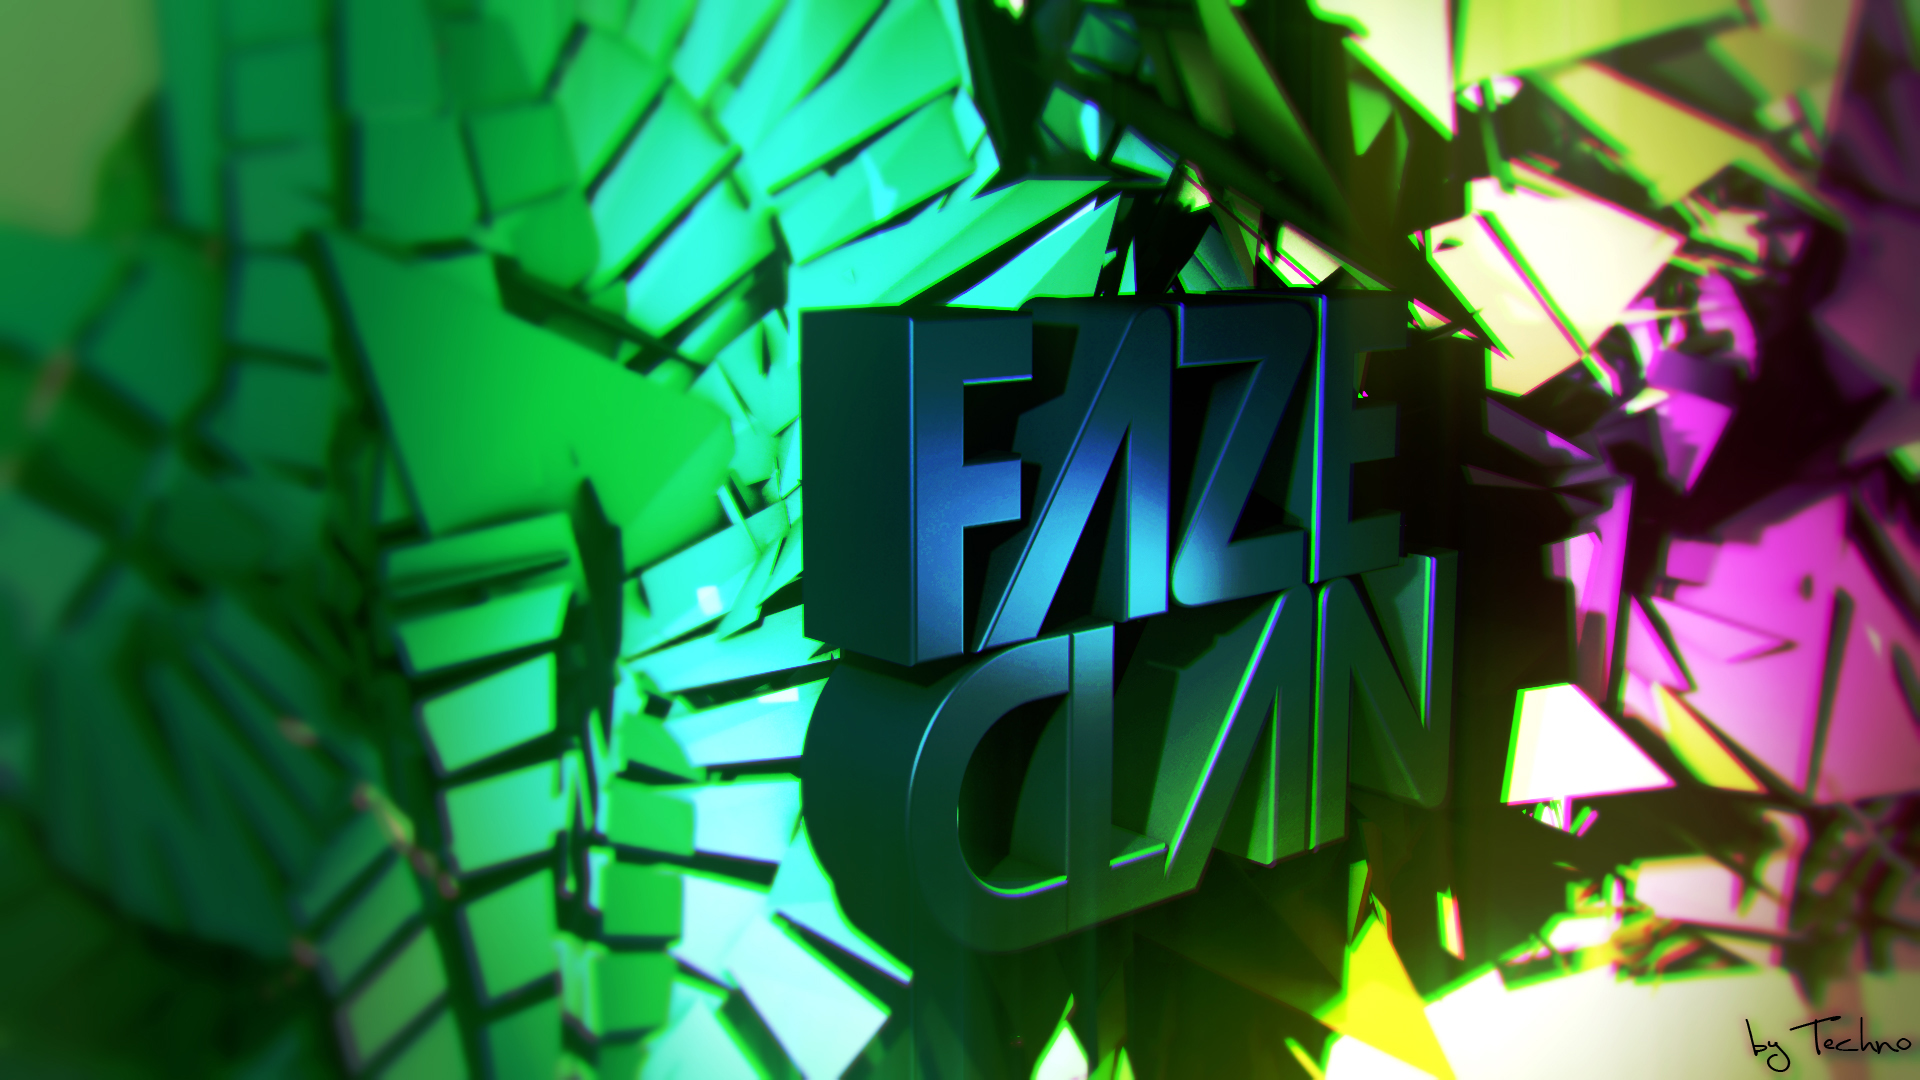 faze clan wallpaper pack download